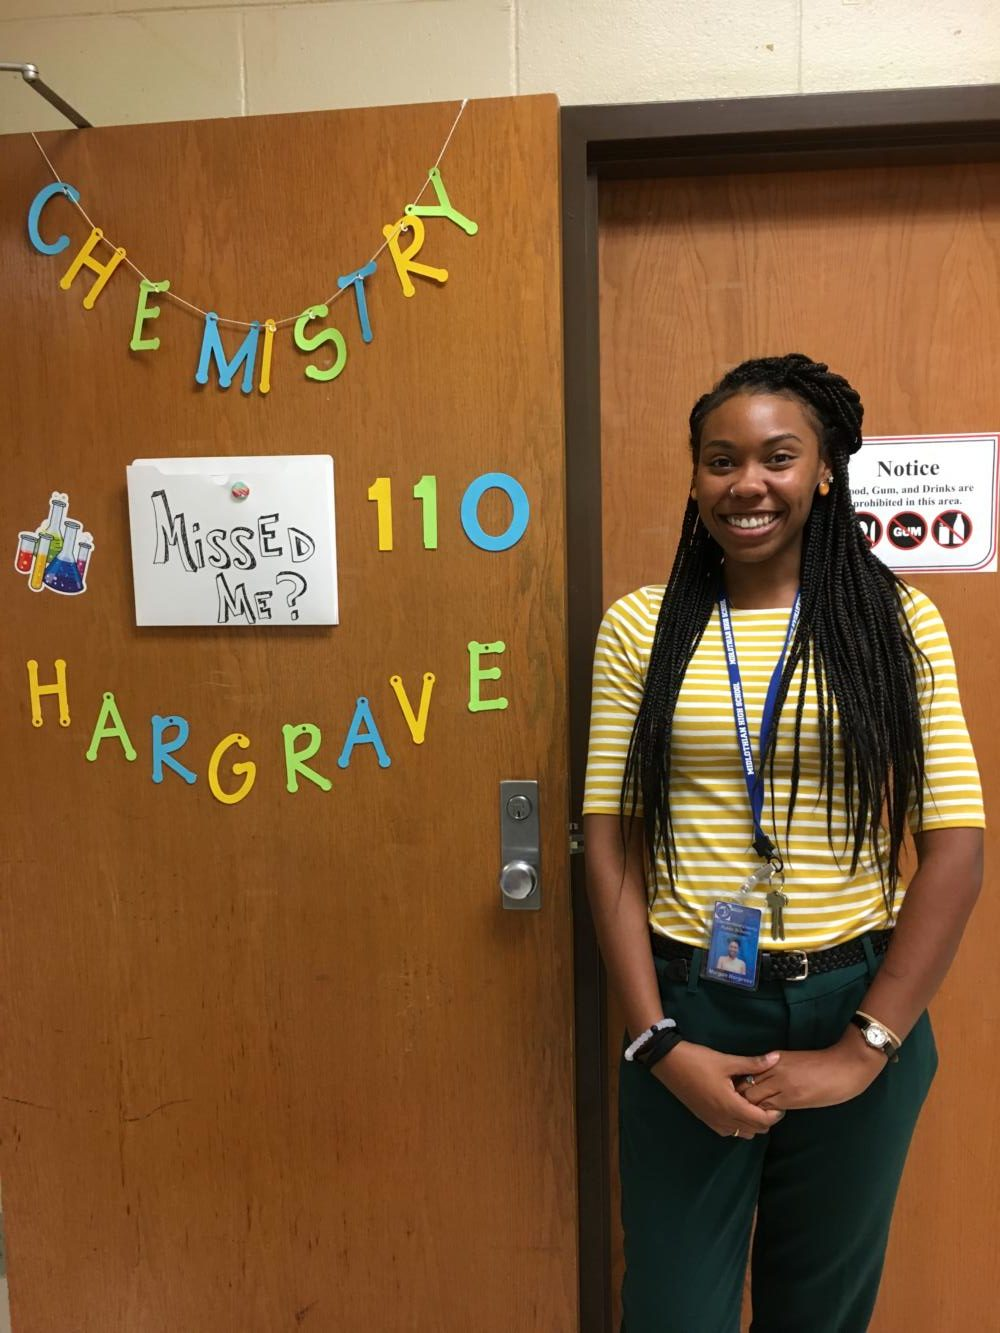 Ms. Hargrave is excited to teach chemistry this year!